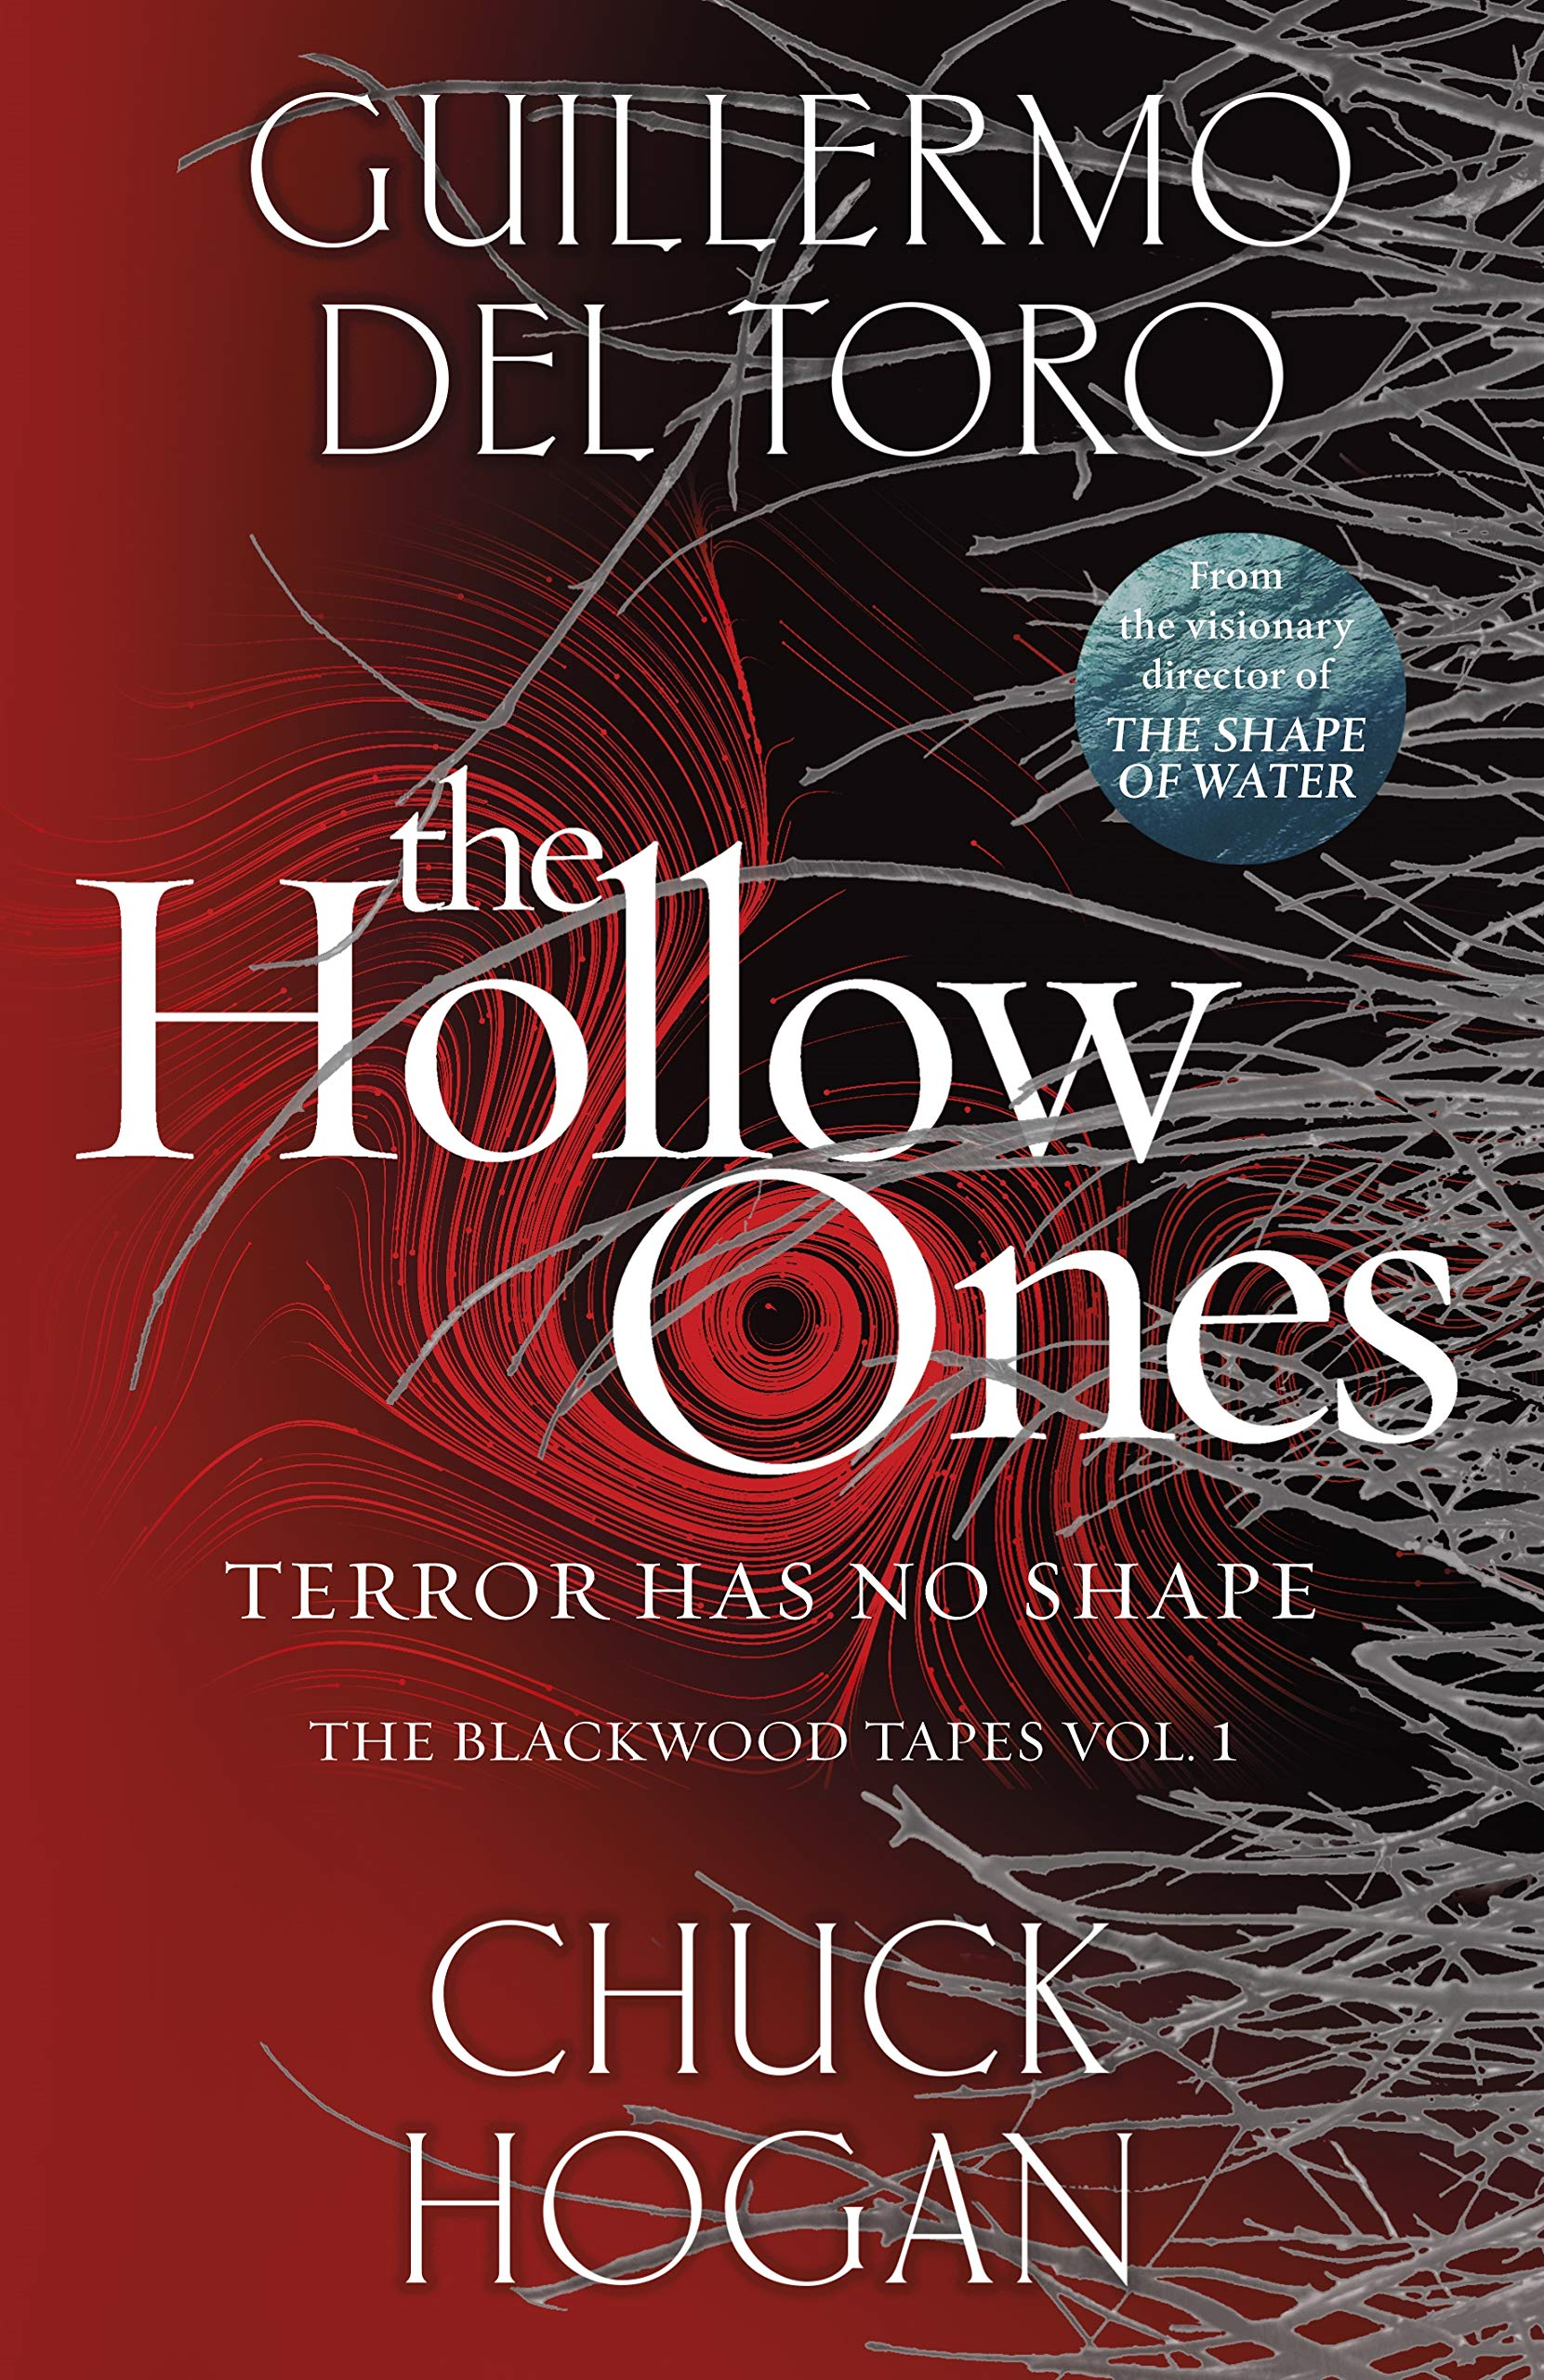 SFFWorld Countdown to Hallowe'en 2020: The Hollow Ones by Guillermo del Toro and Chuck Hogan